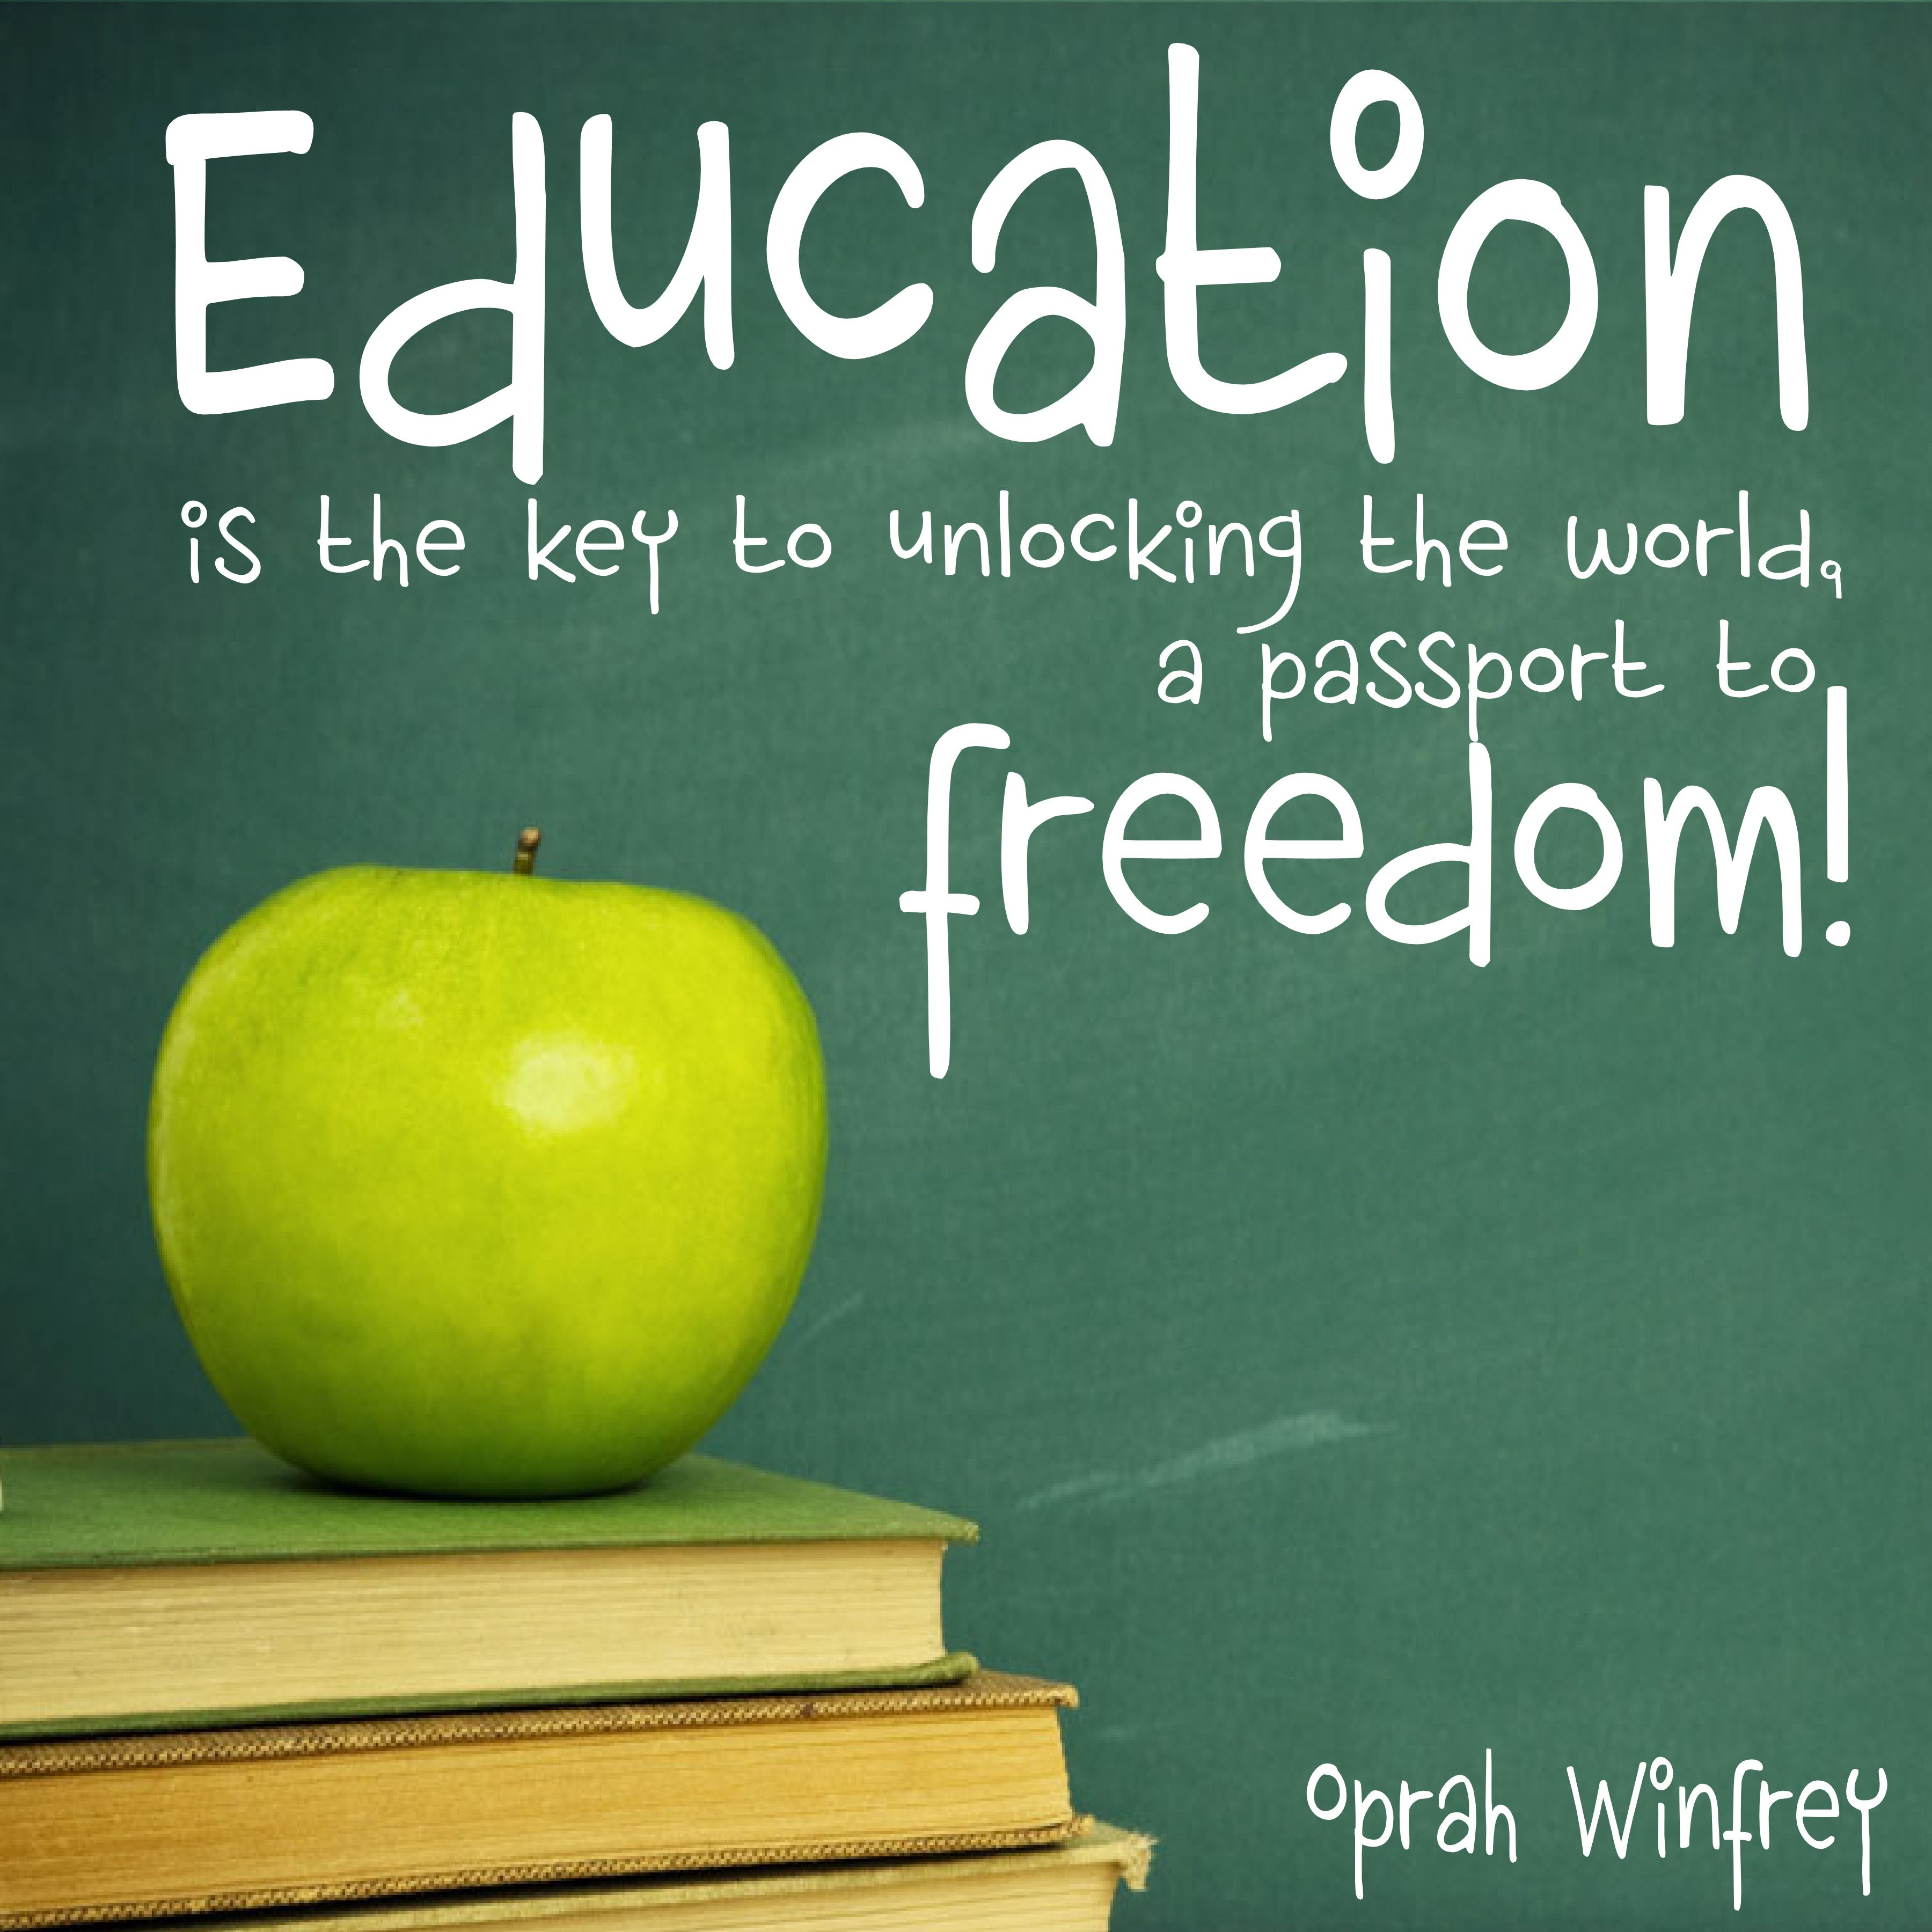 Education Is The Key To Unlocking The World, A Passport To